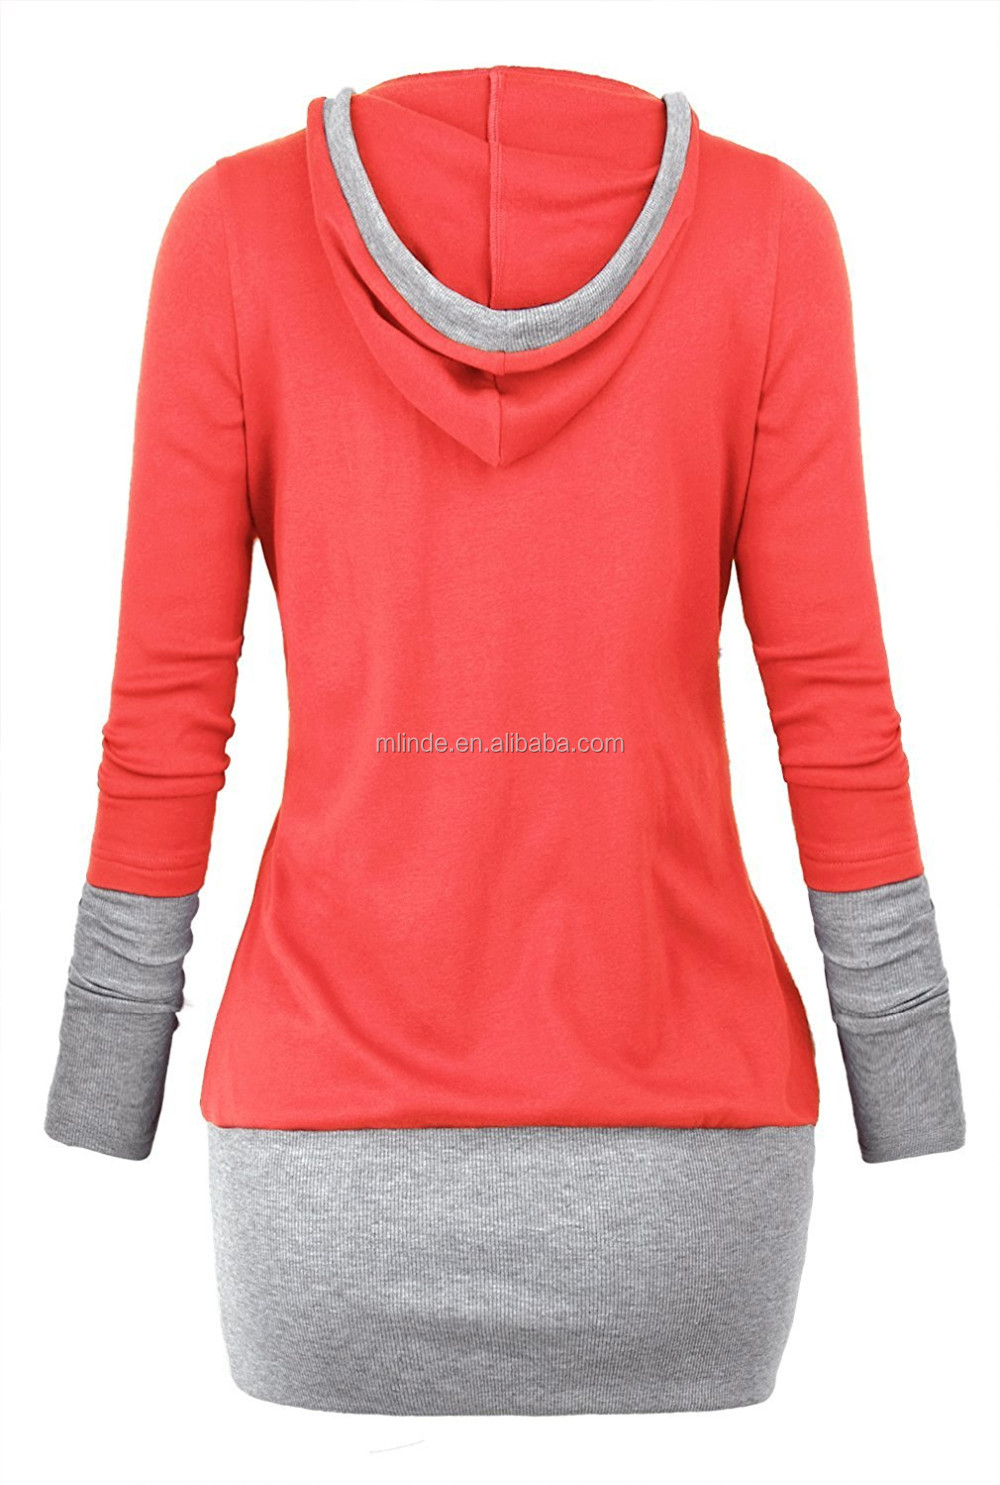 Manufacturers womens 2 color block hoodie casual shirt top for Custom shirts and hoodies cheap